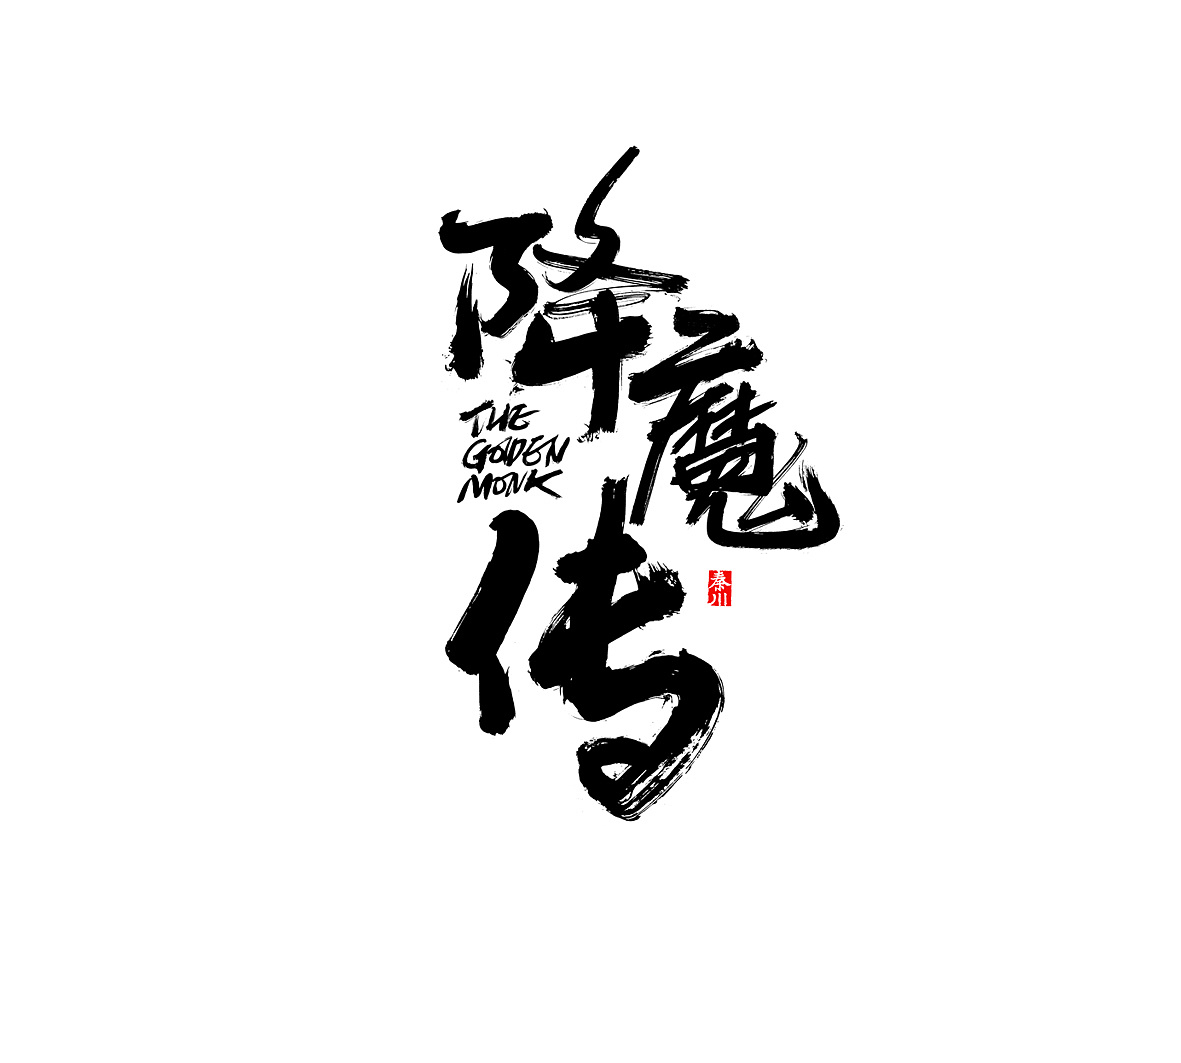 chinesefontdesign.com 2017 11 29 13 30 01 084569 12P Super cool Chinese fonts and movies combined design